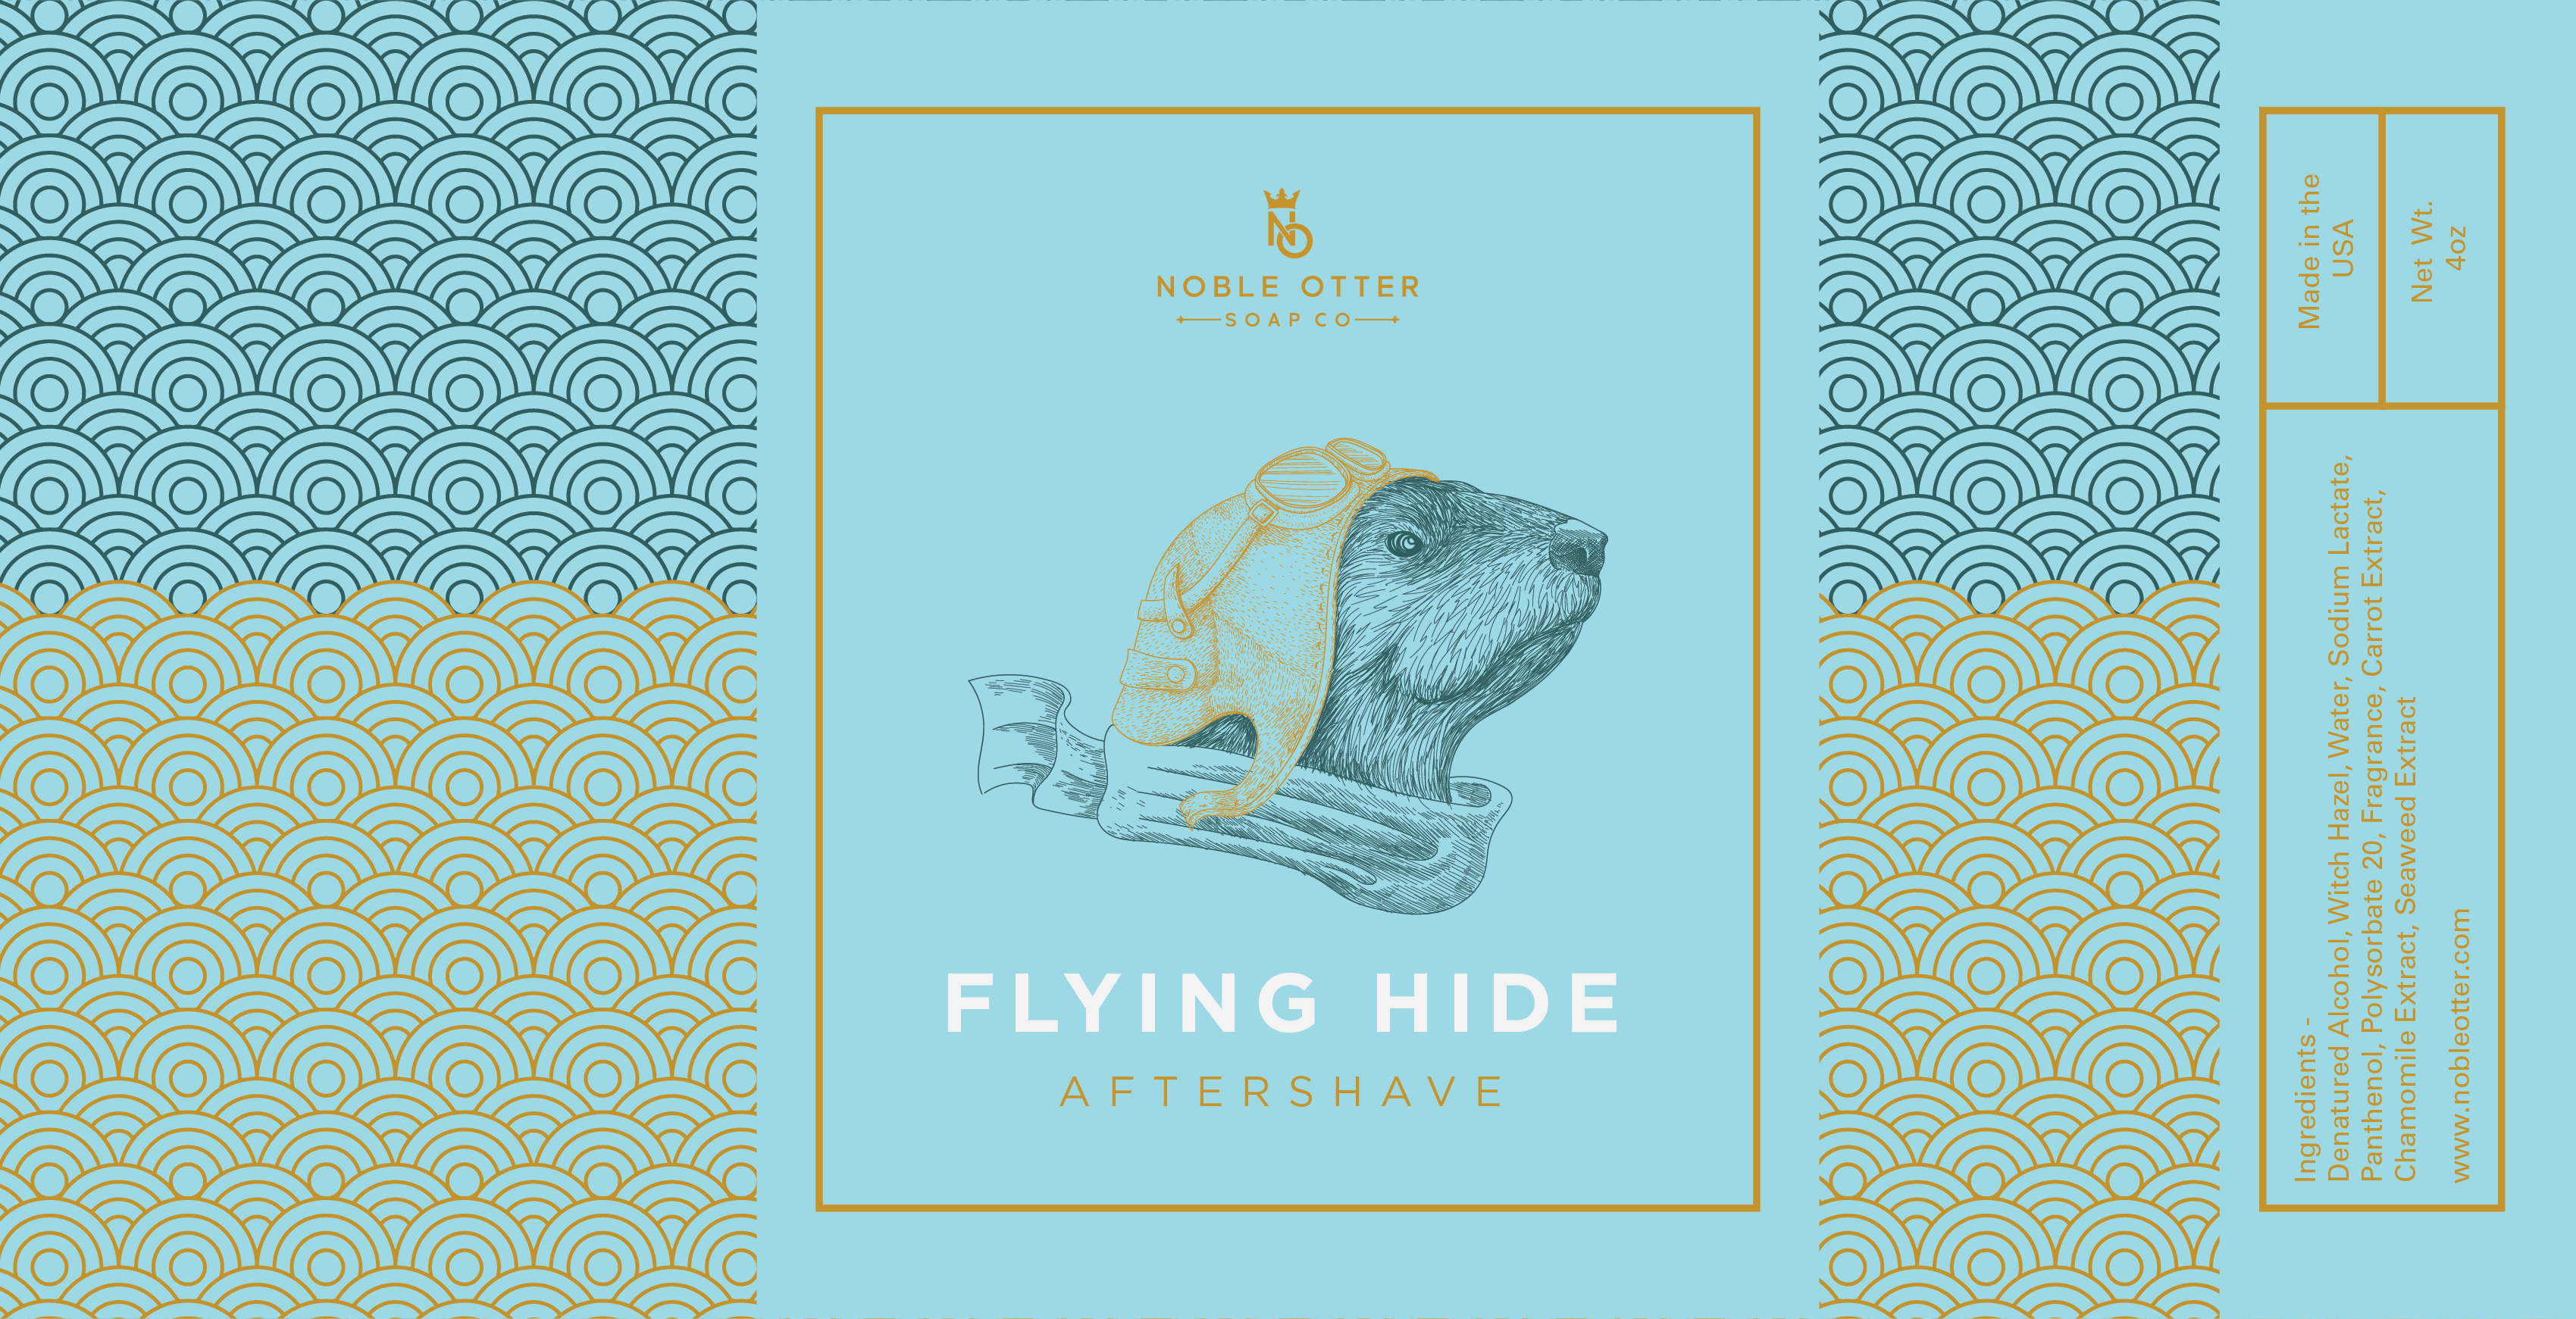 Noble Otter - Flying Hide - Aftershave image